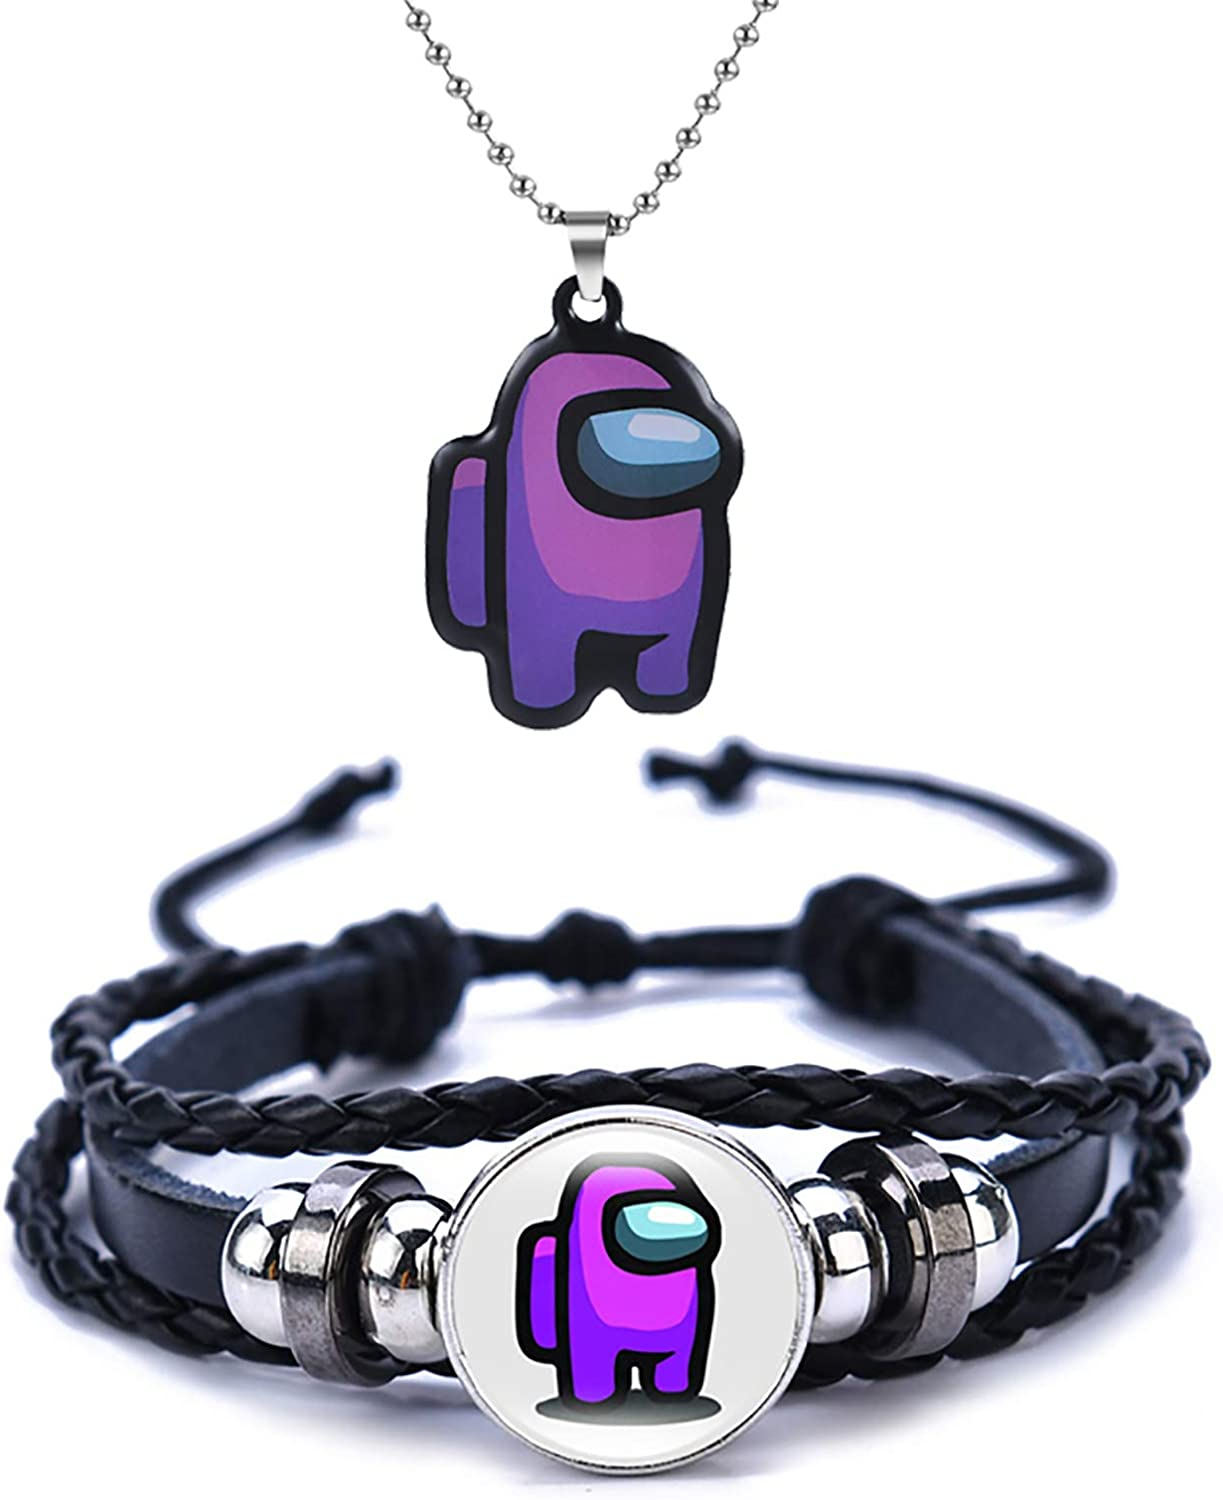 HERSESI Pendant Necklace Bracelet Set for Men Women Strategy Casual Game Lovers Jewelry